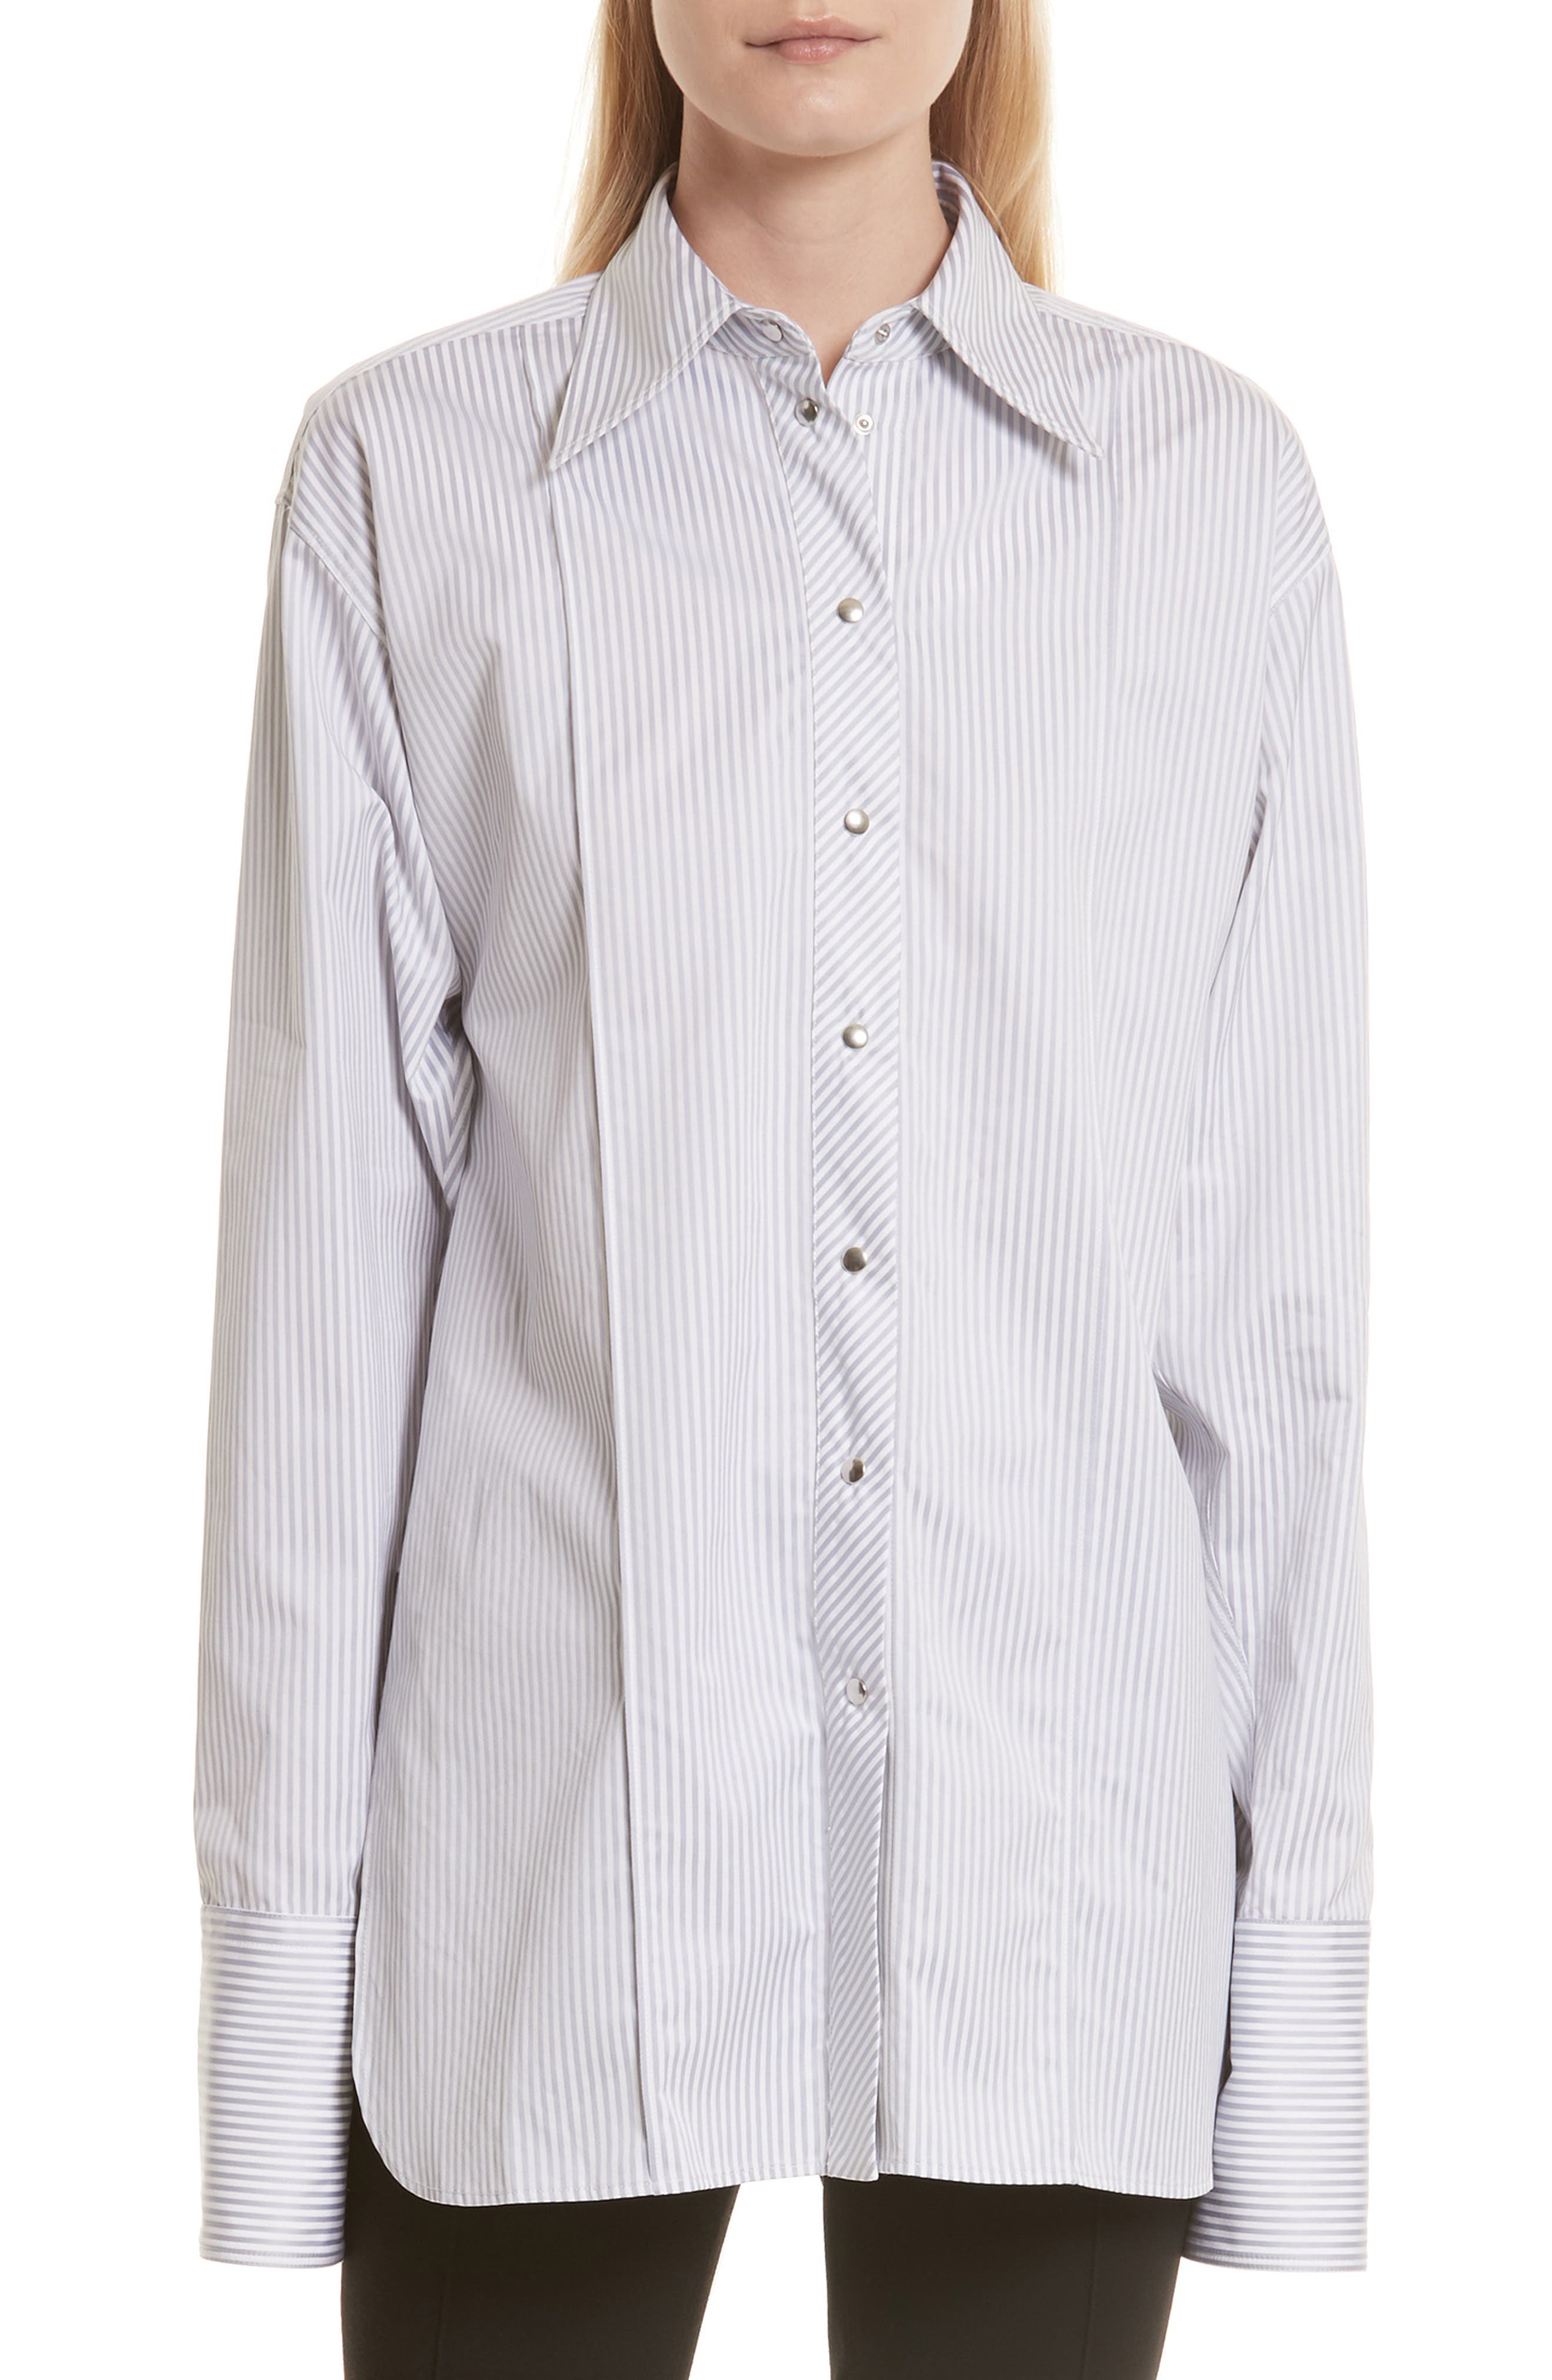 Stripe Poplin Blouse,                             Main thumbnail 1, color,                             Grey Multi